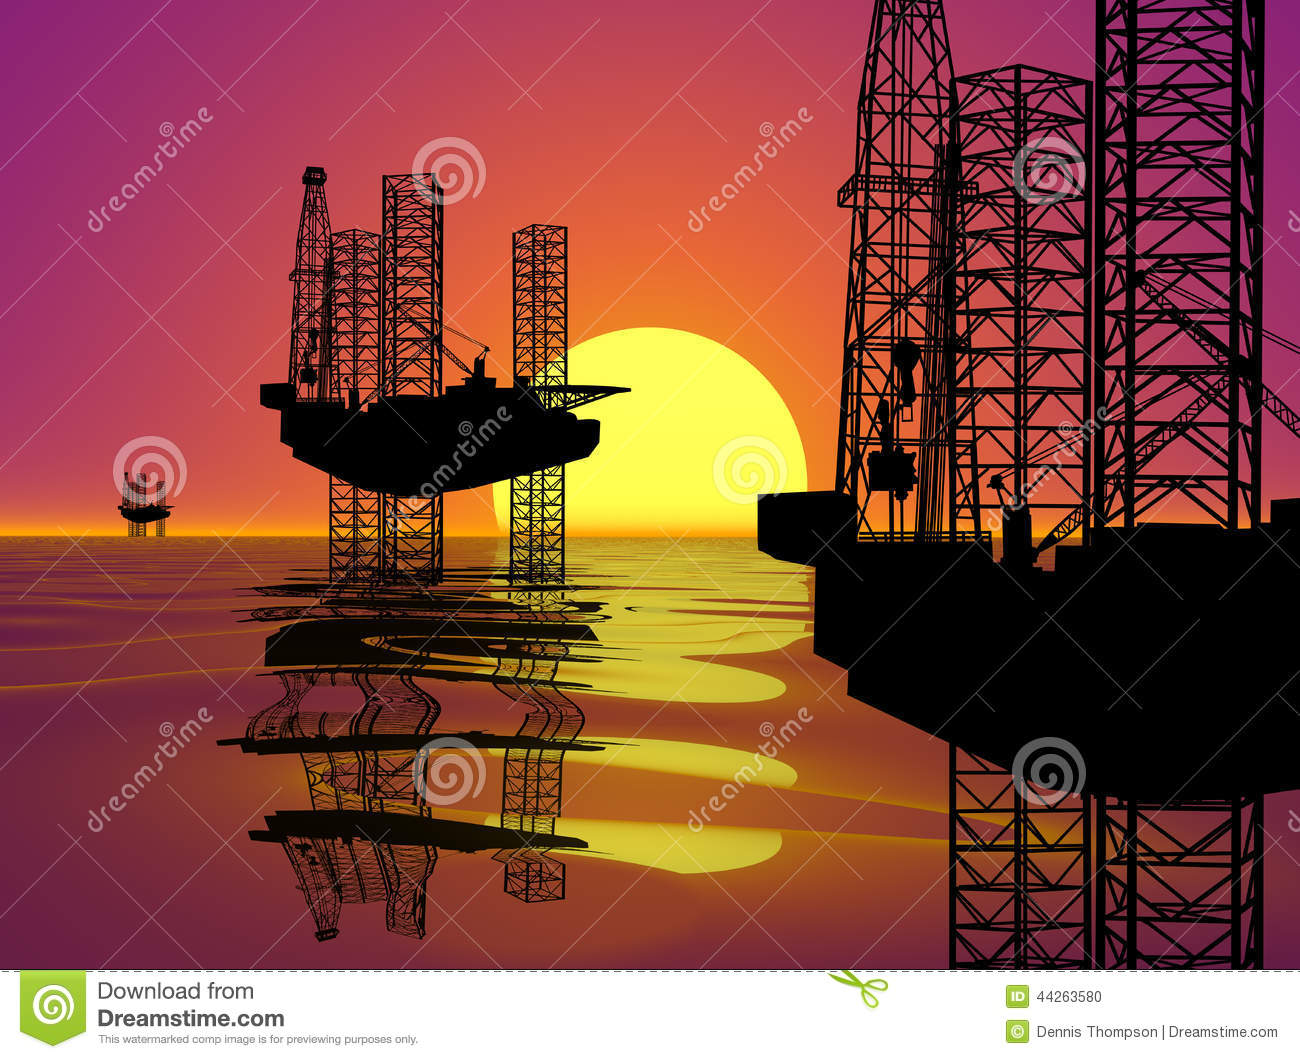 against offshore drilling essay Off-shore oil drilling essay discussion jan 6, 2013 by: emilyl keywords offshore oil drilling opinion persuasive essay tywlsa the most sensible option in this difficult situation is offshore oil drilling a solution with many benefits.